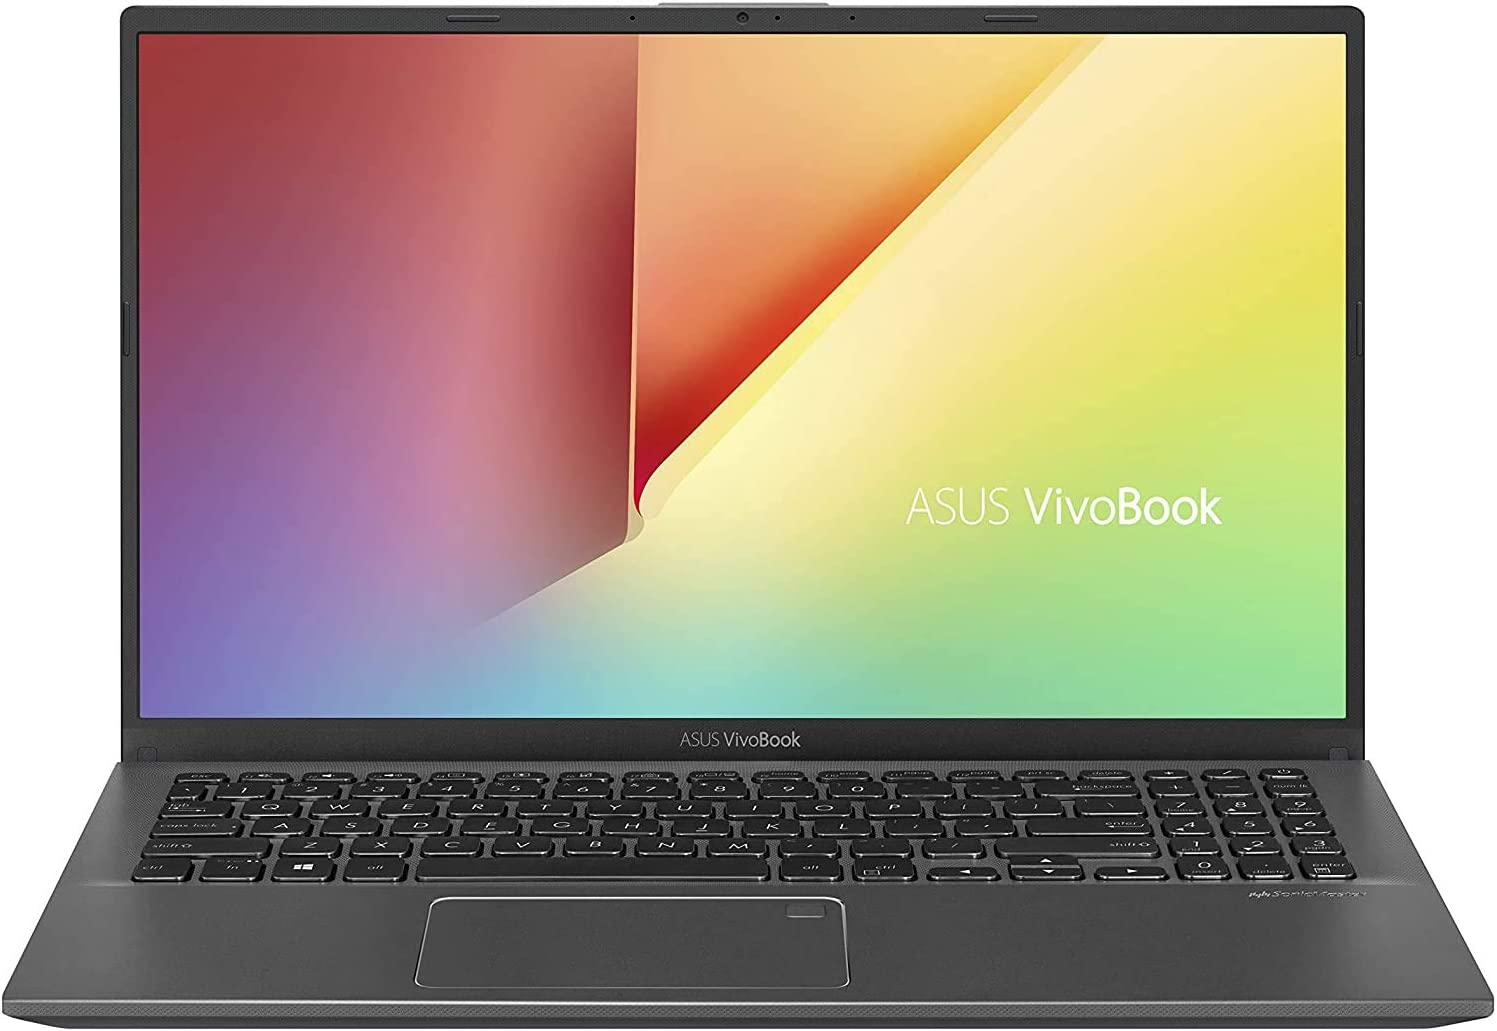 ASUS Vivobook R 15.6-inch FHD Touch-Screen 128GB SSD Intel i3-1005G1 up to 3.4GHz (4GB RAM, Windows 10 Home, HDMI, SD Card Reader) Slate Gray, R564JA-UH31T